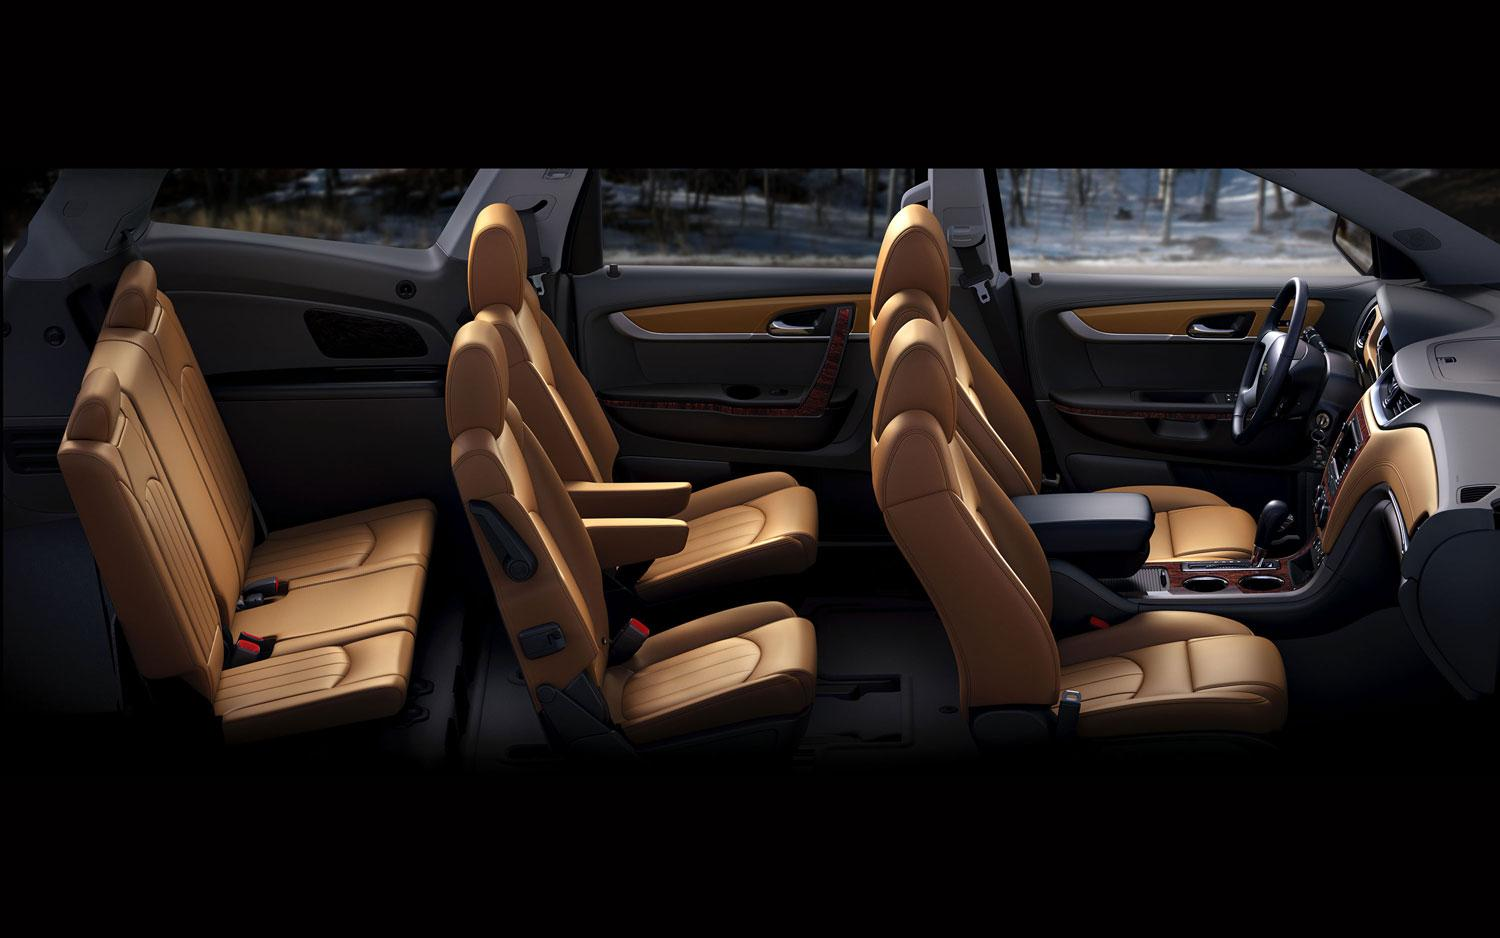 Interior of the Chevy Traverse